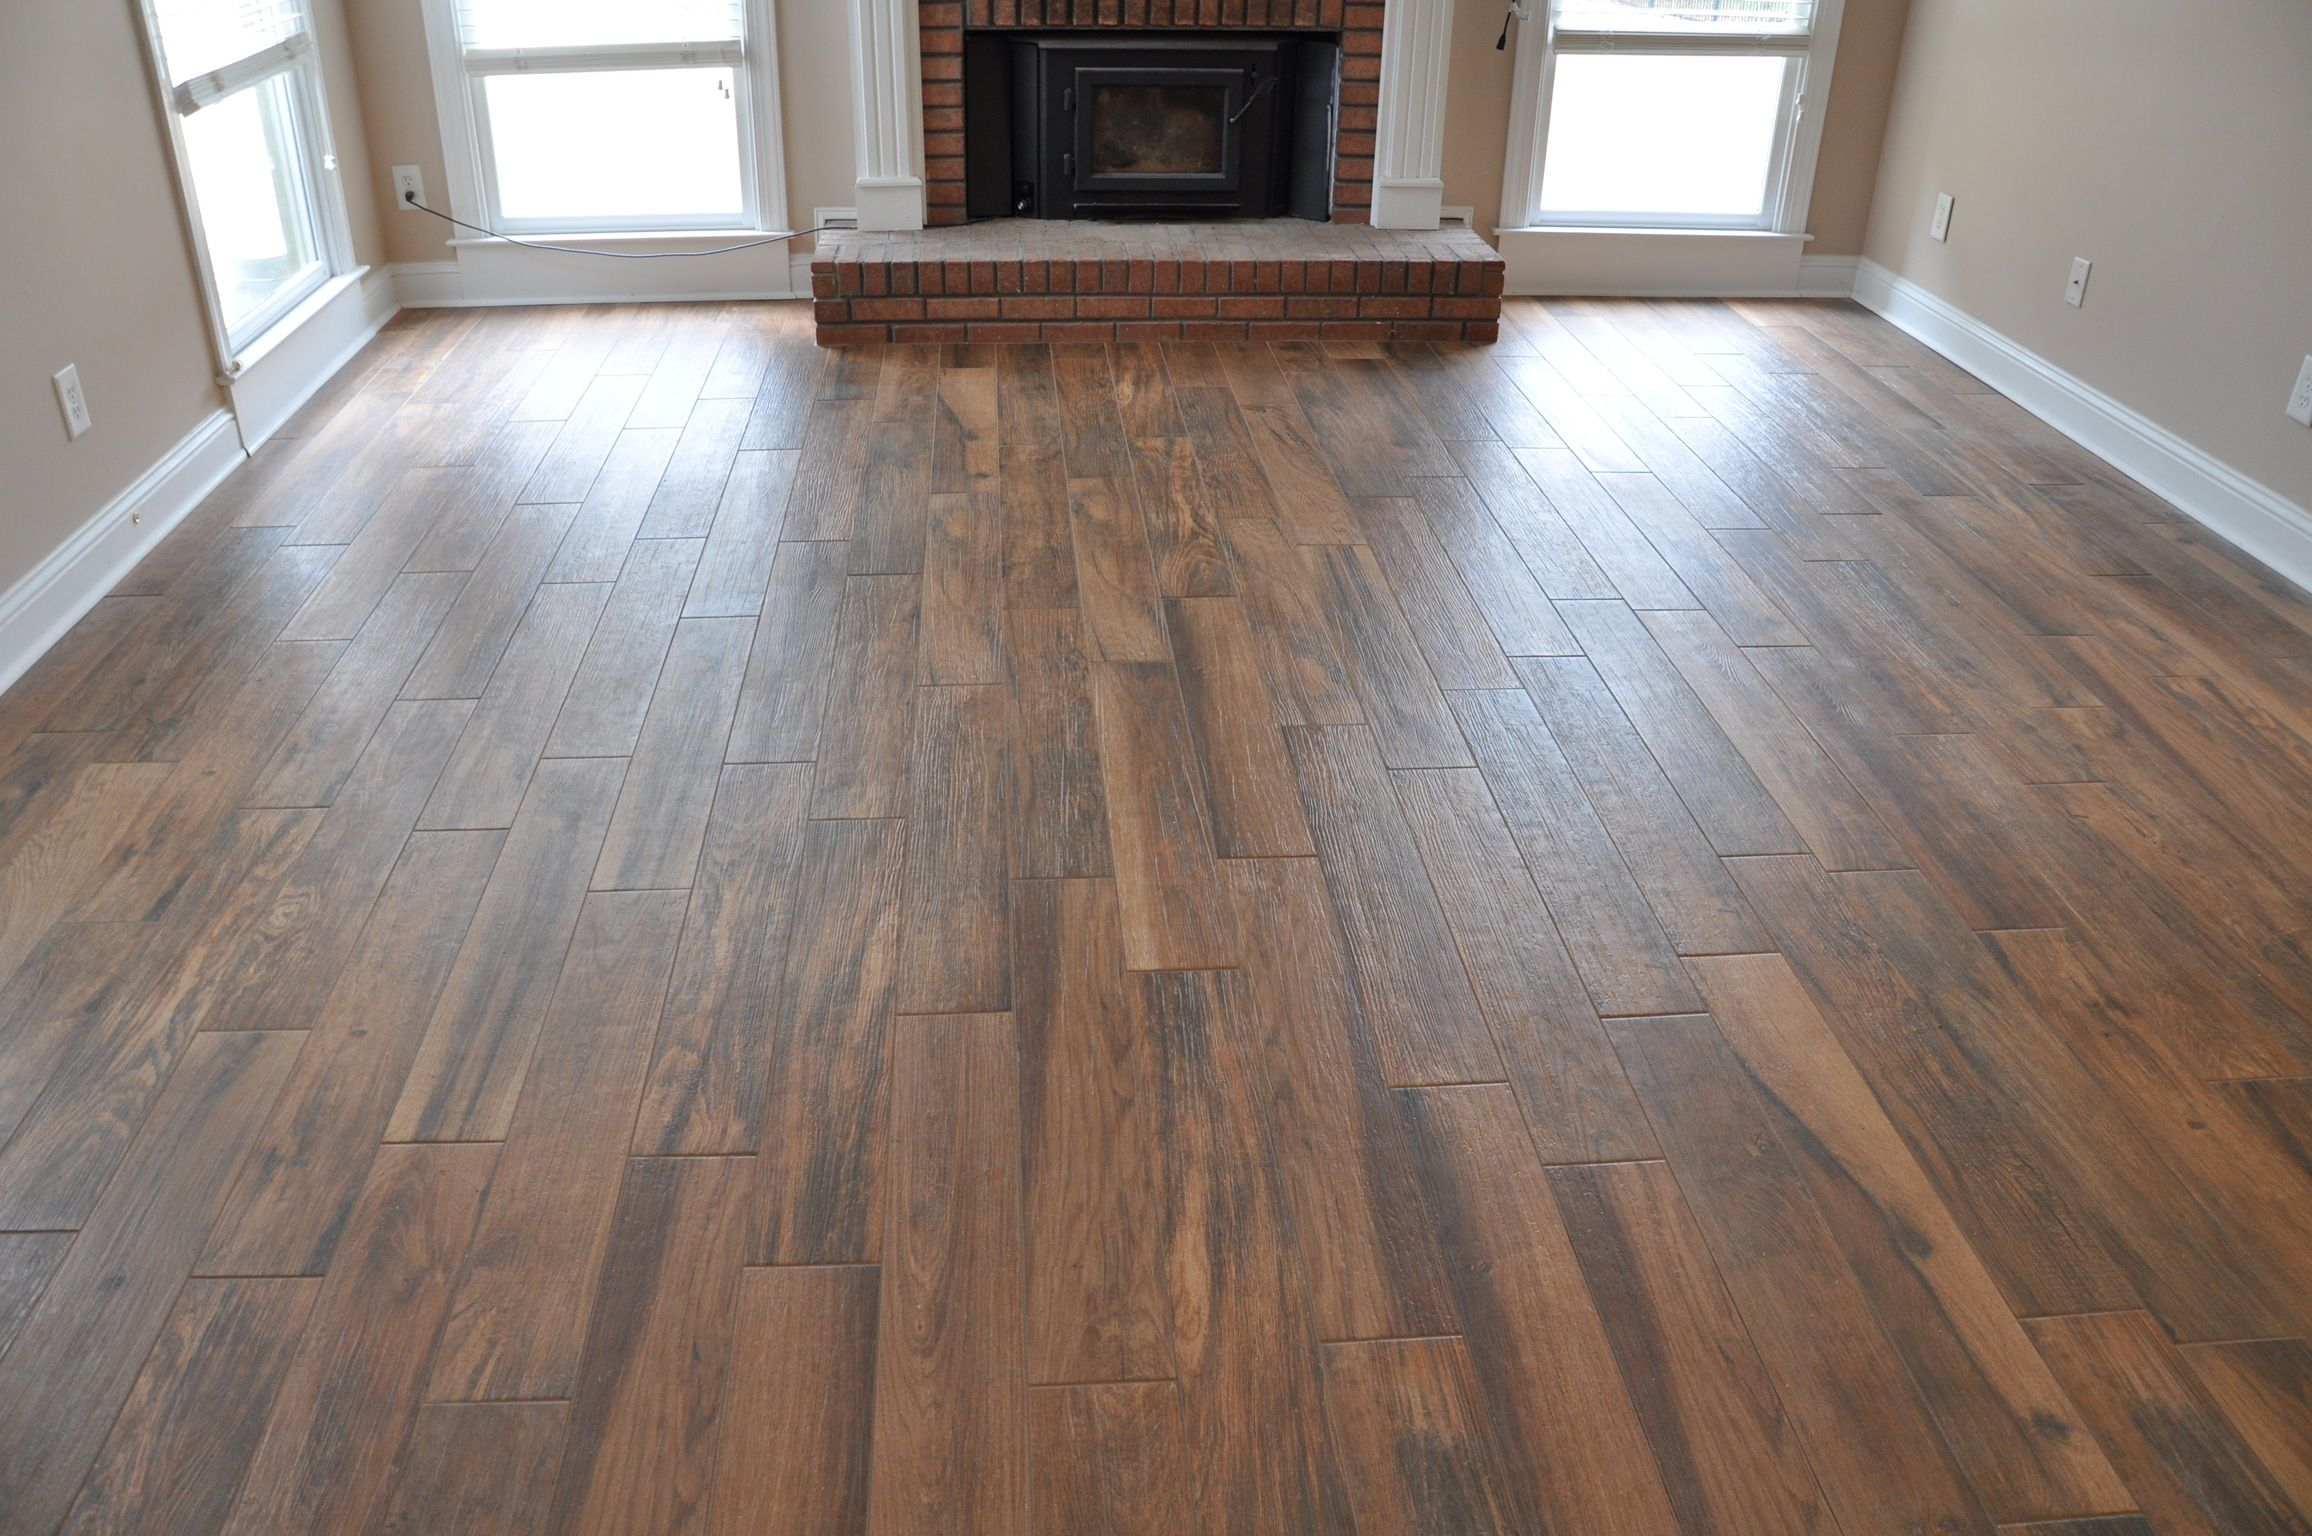 Wood Look Porcelain Tile Google Search Flooring Pinterest Wood Look Tile Porcelain